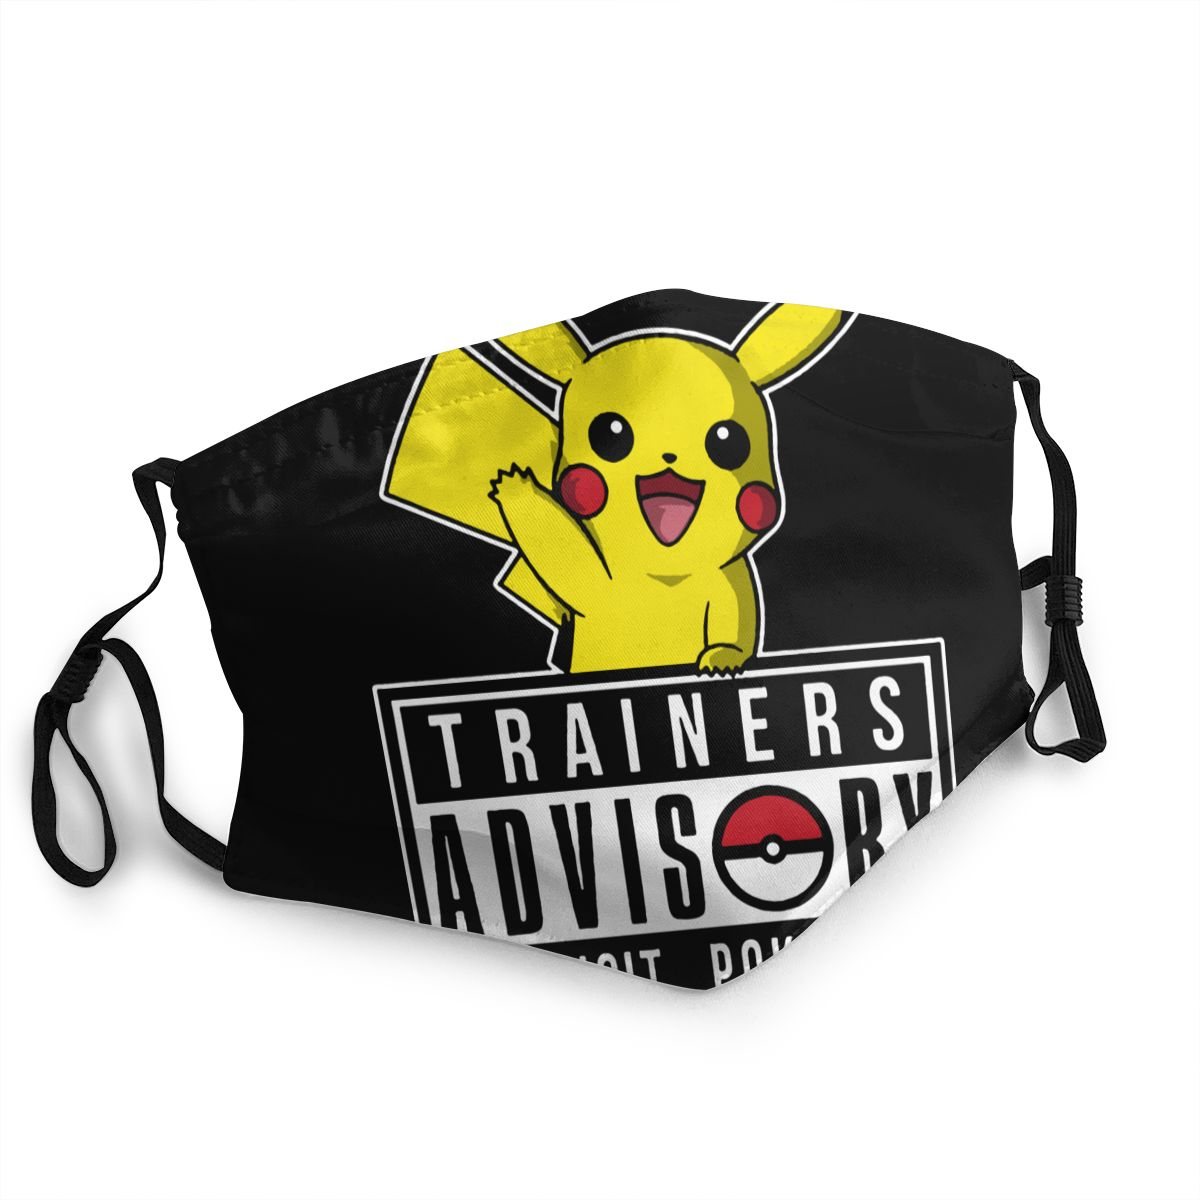 Trainers Advisory Pokemon Pikachu Non-Disposable Mouth Face Mask Anti Bacterial Dust Mask Protection Mask Respirator Muffle